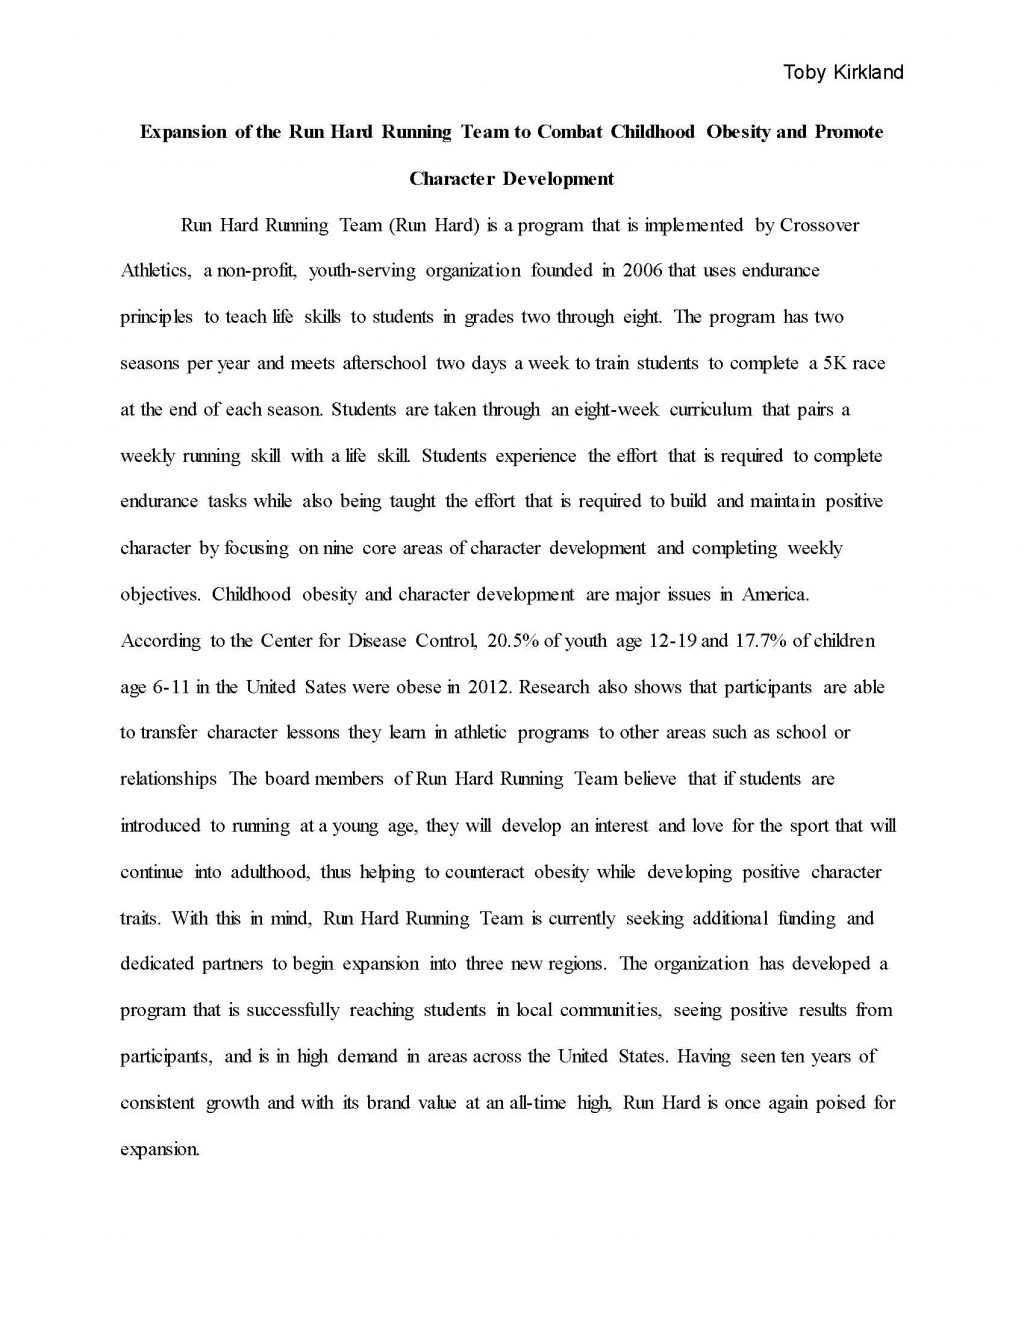 012 Childhood Obesity Research Paper Topics Essay Sample Barca Fontanacountryinn Com Child Example20 Awesome Articles Full